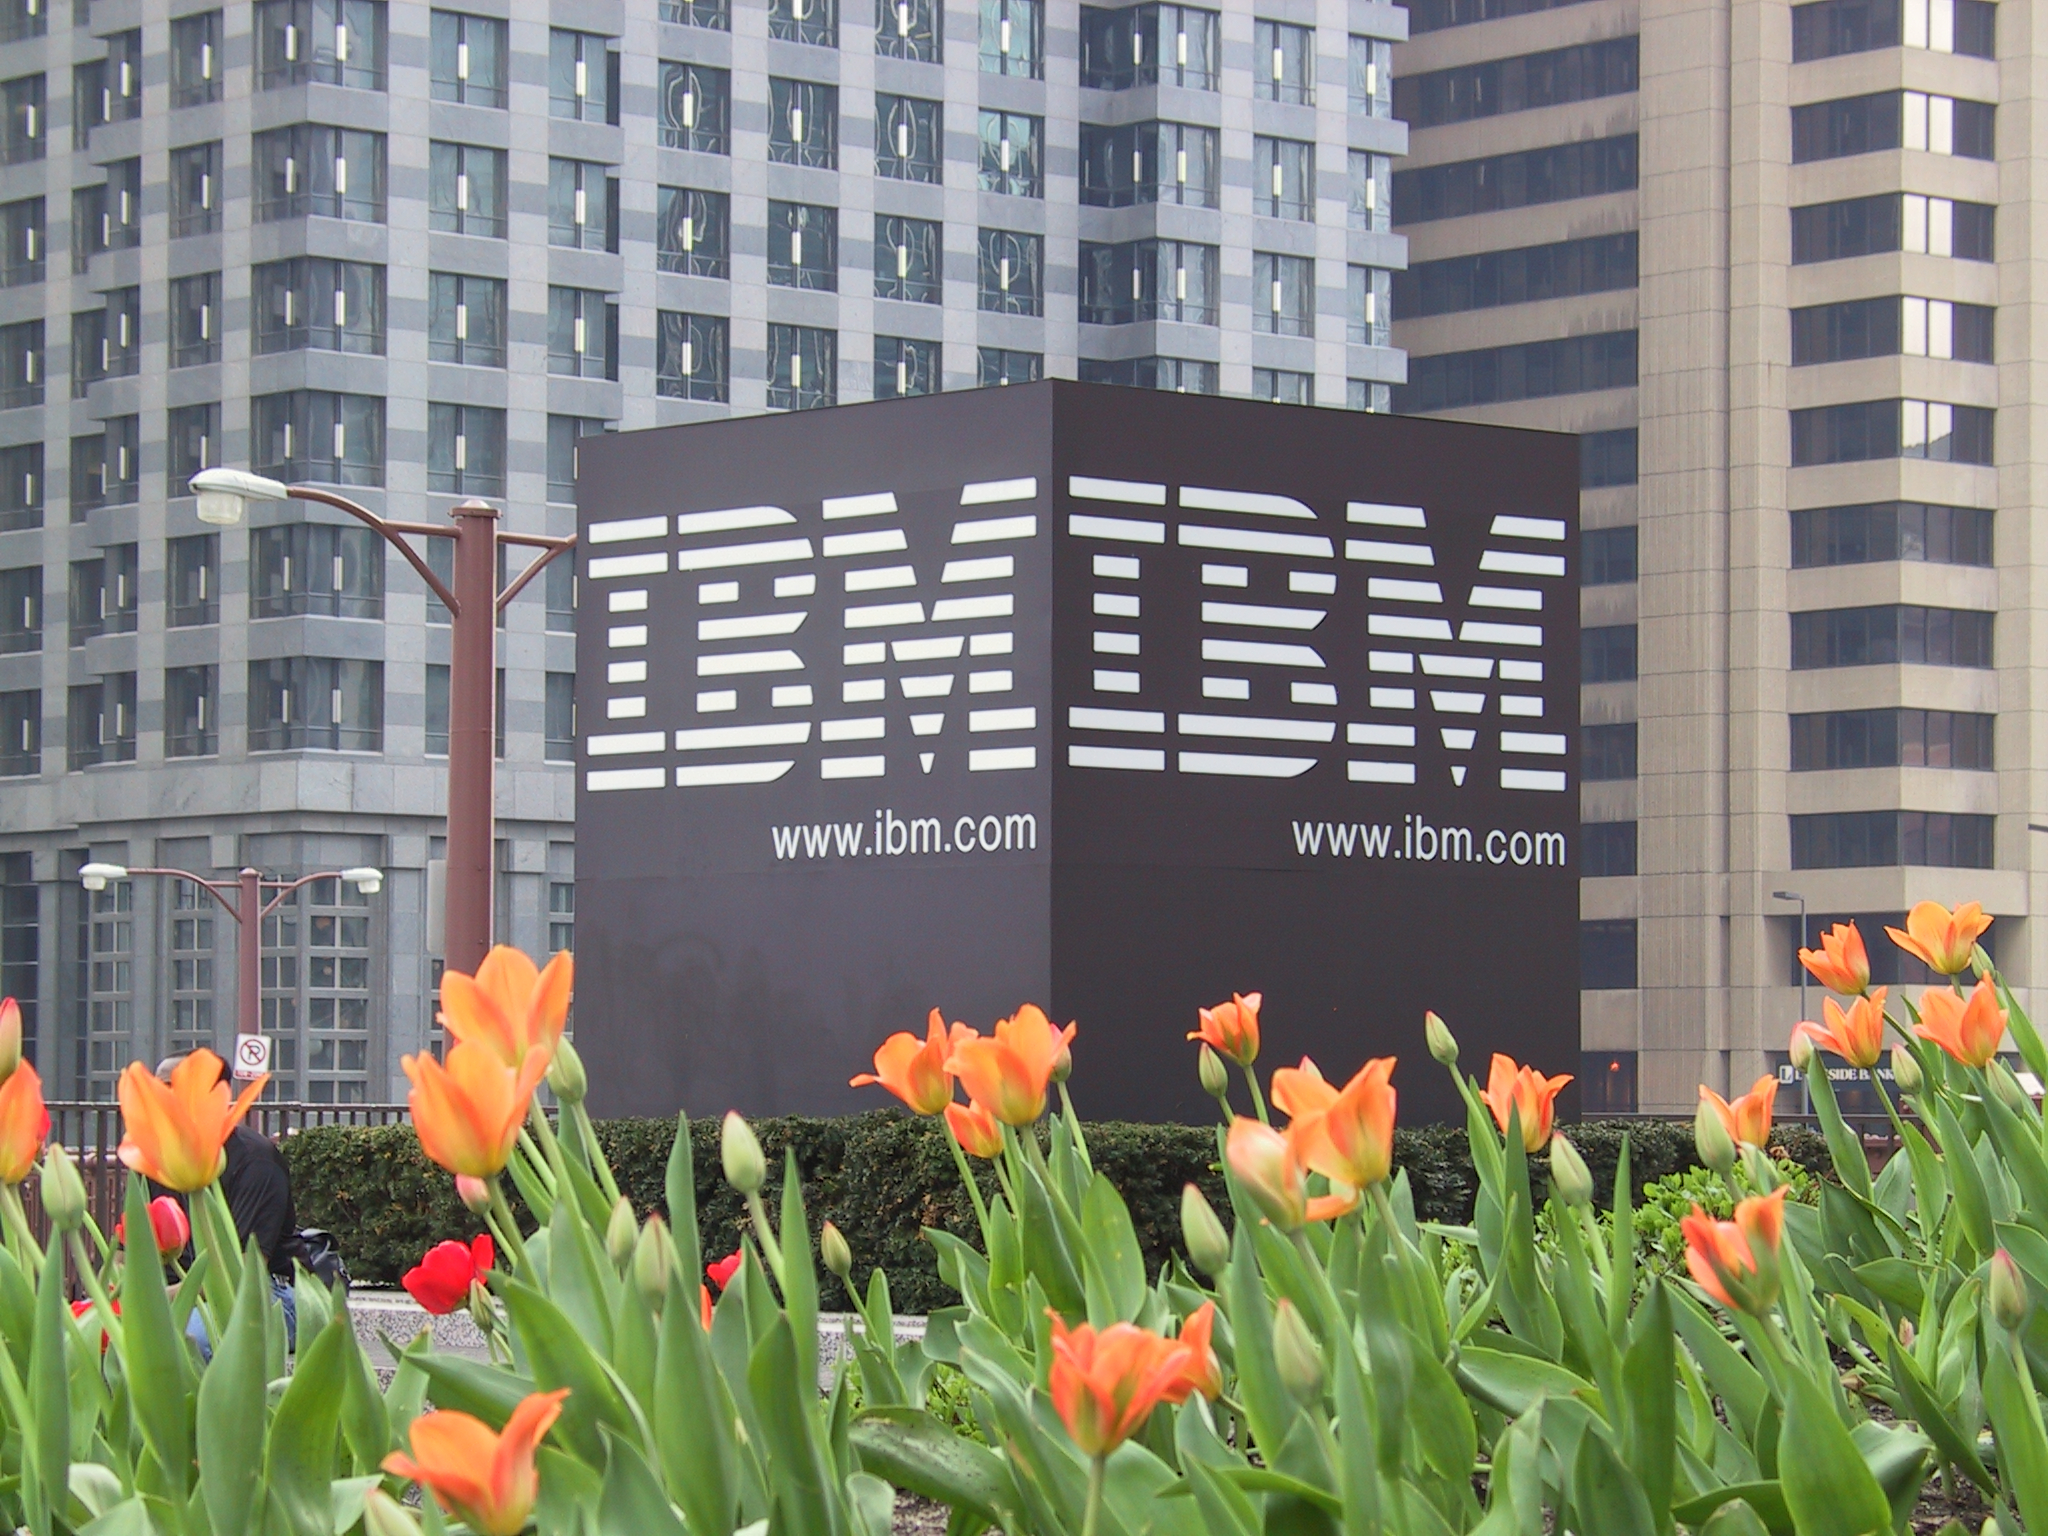 IBM sign Alfred Lui Flickr